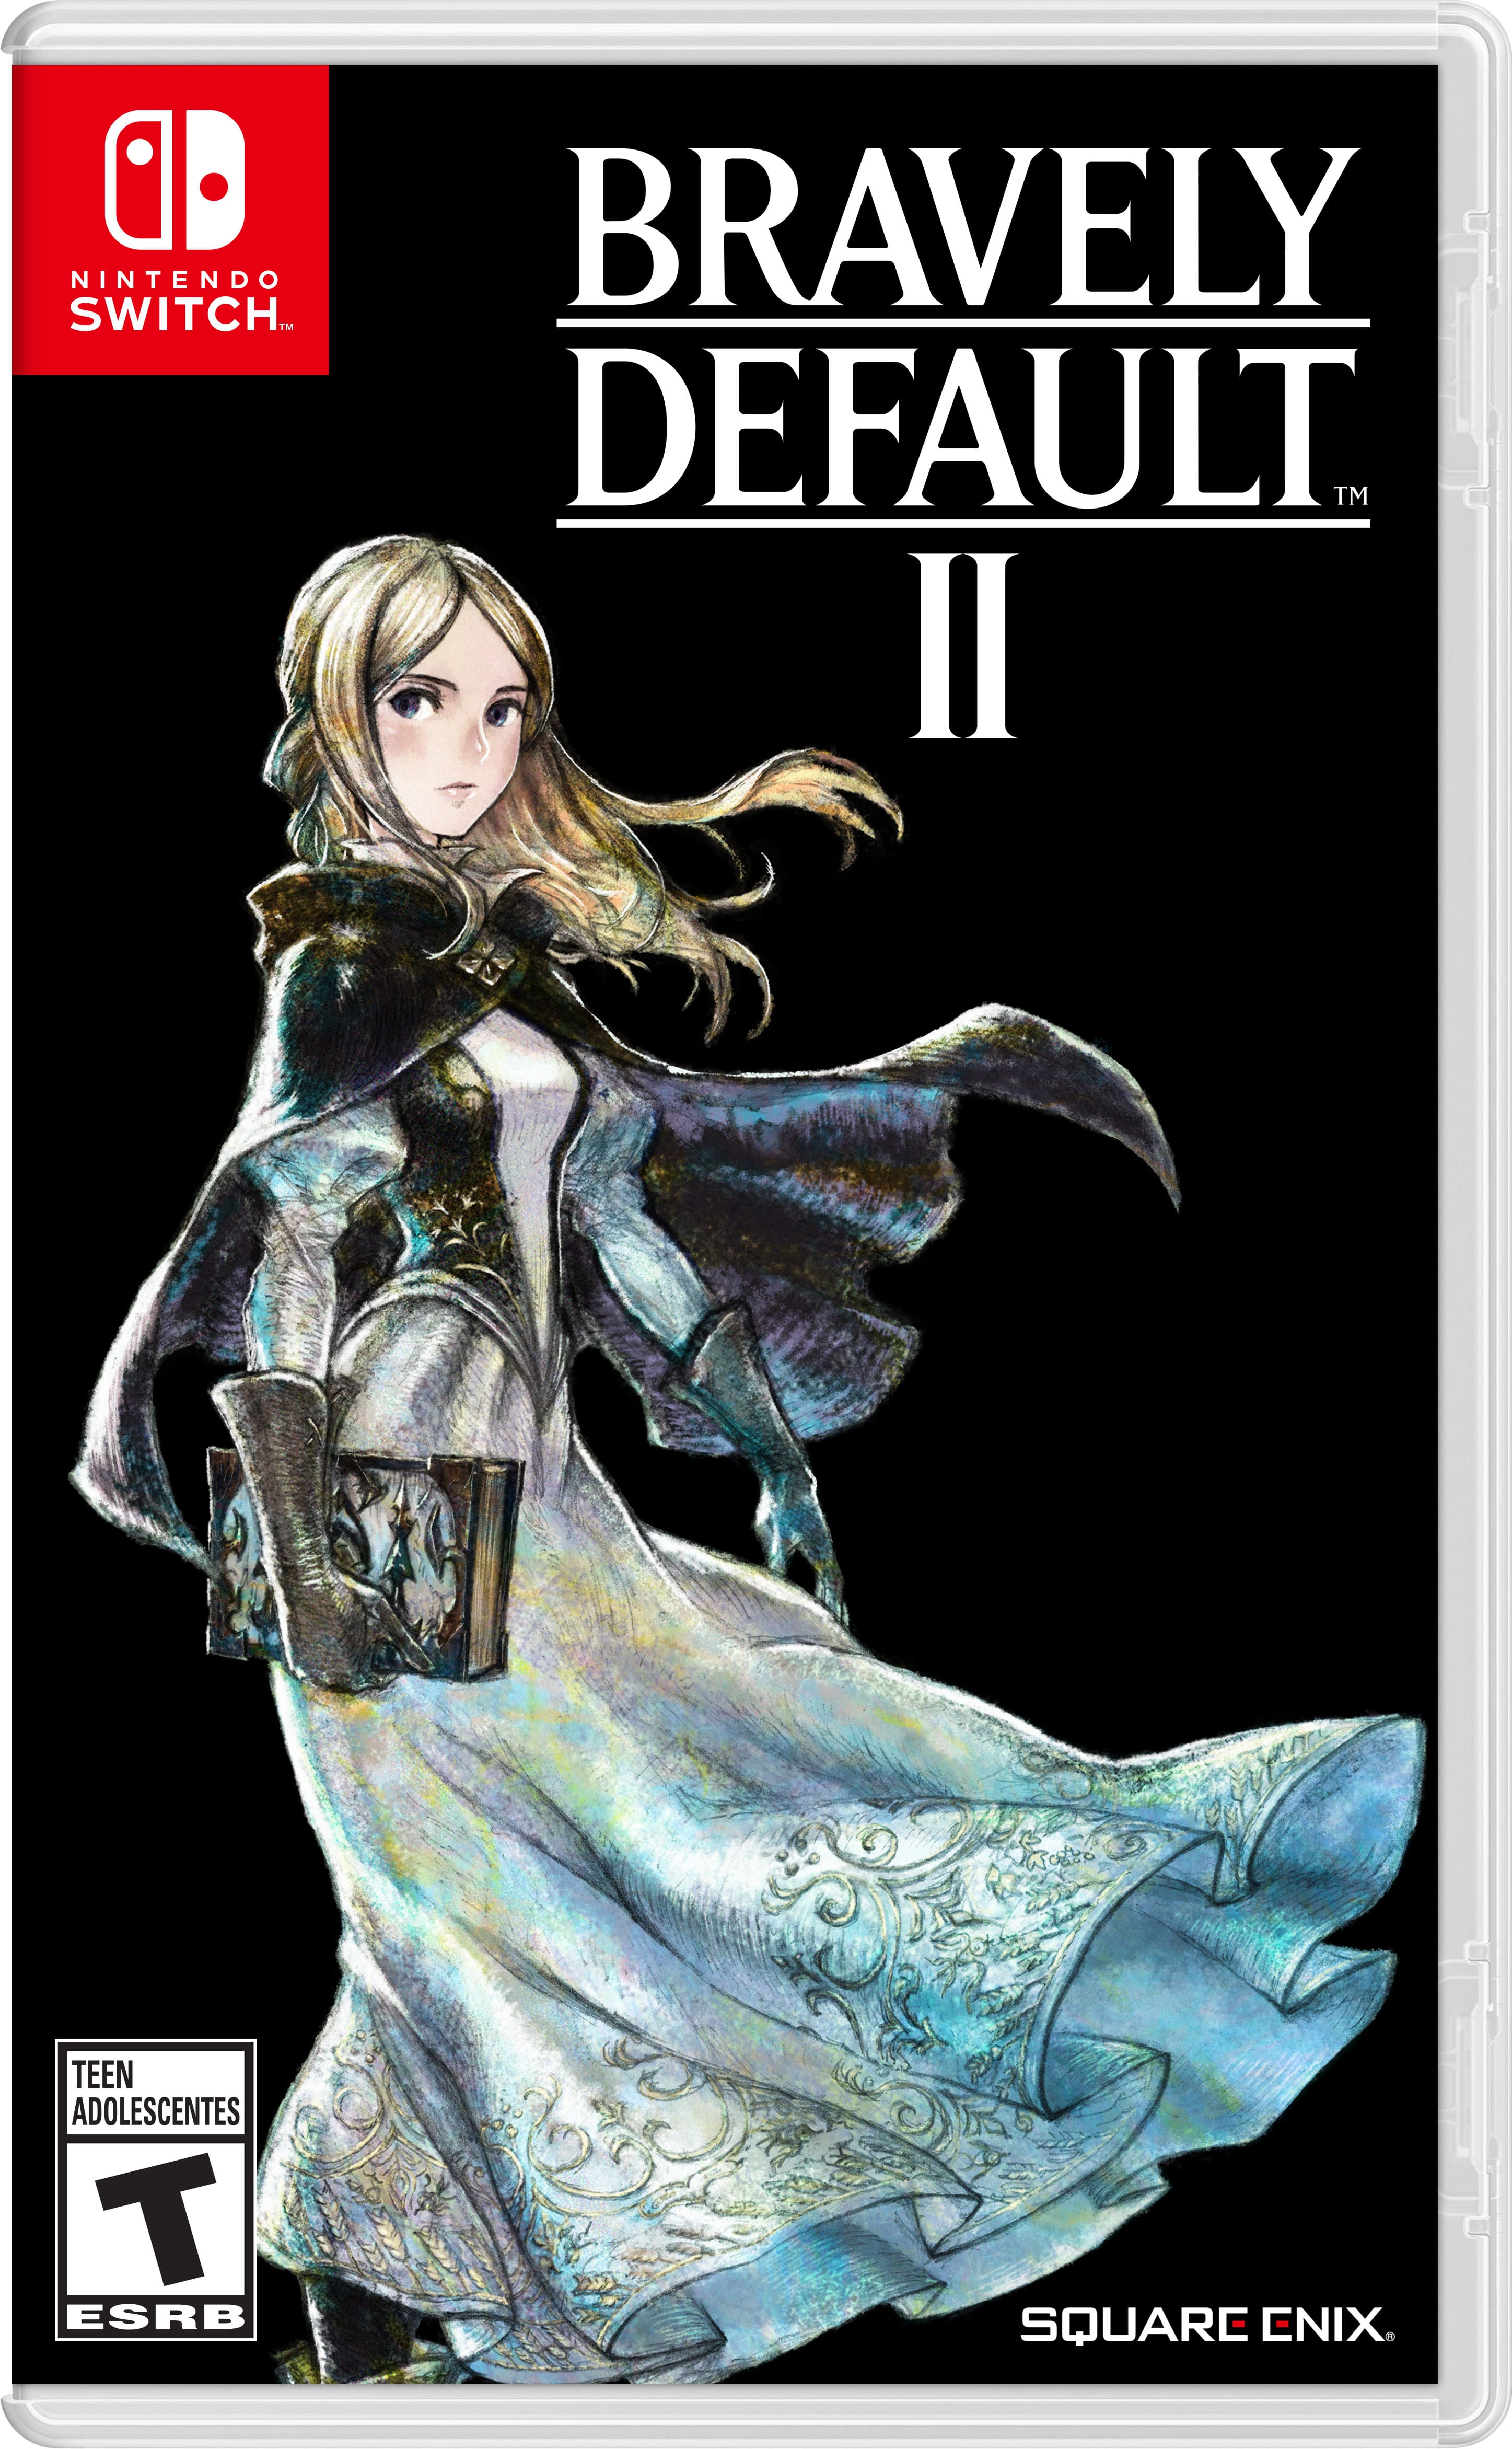 Bravely default ii for nintendo switch $49.94 at walmart.com with free shipping